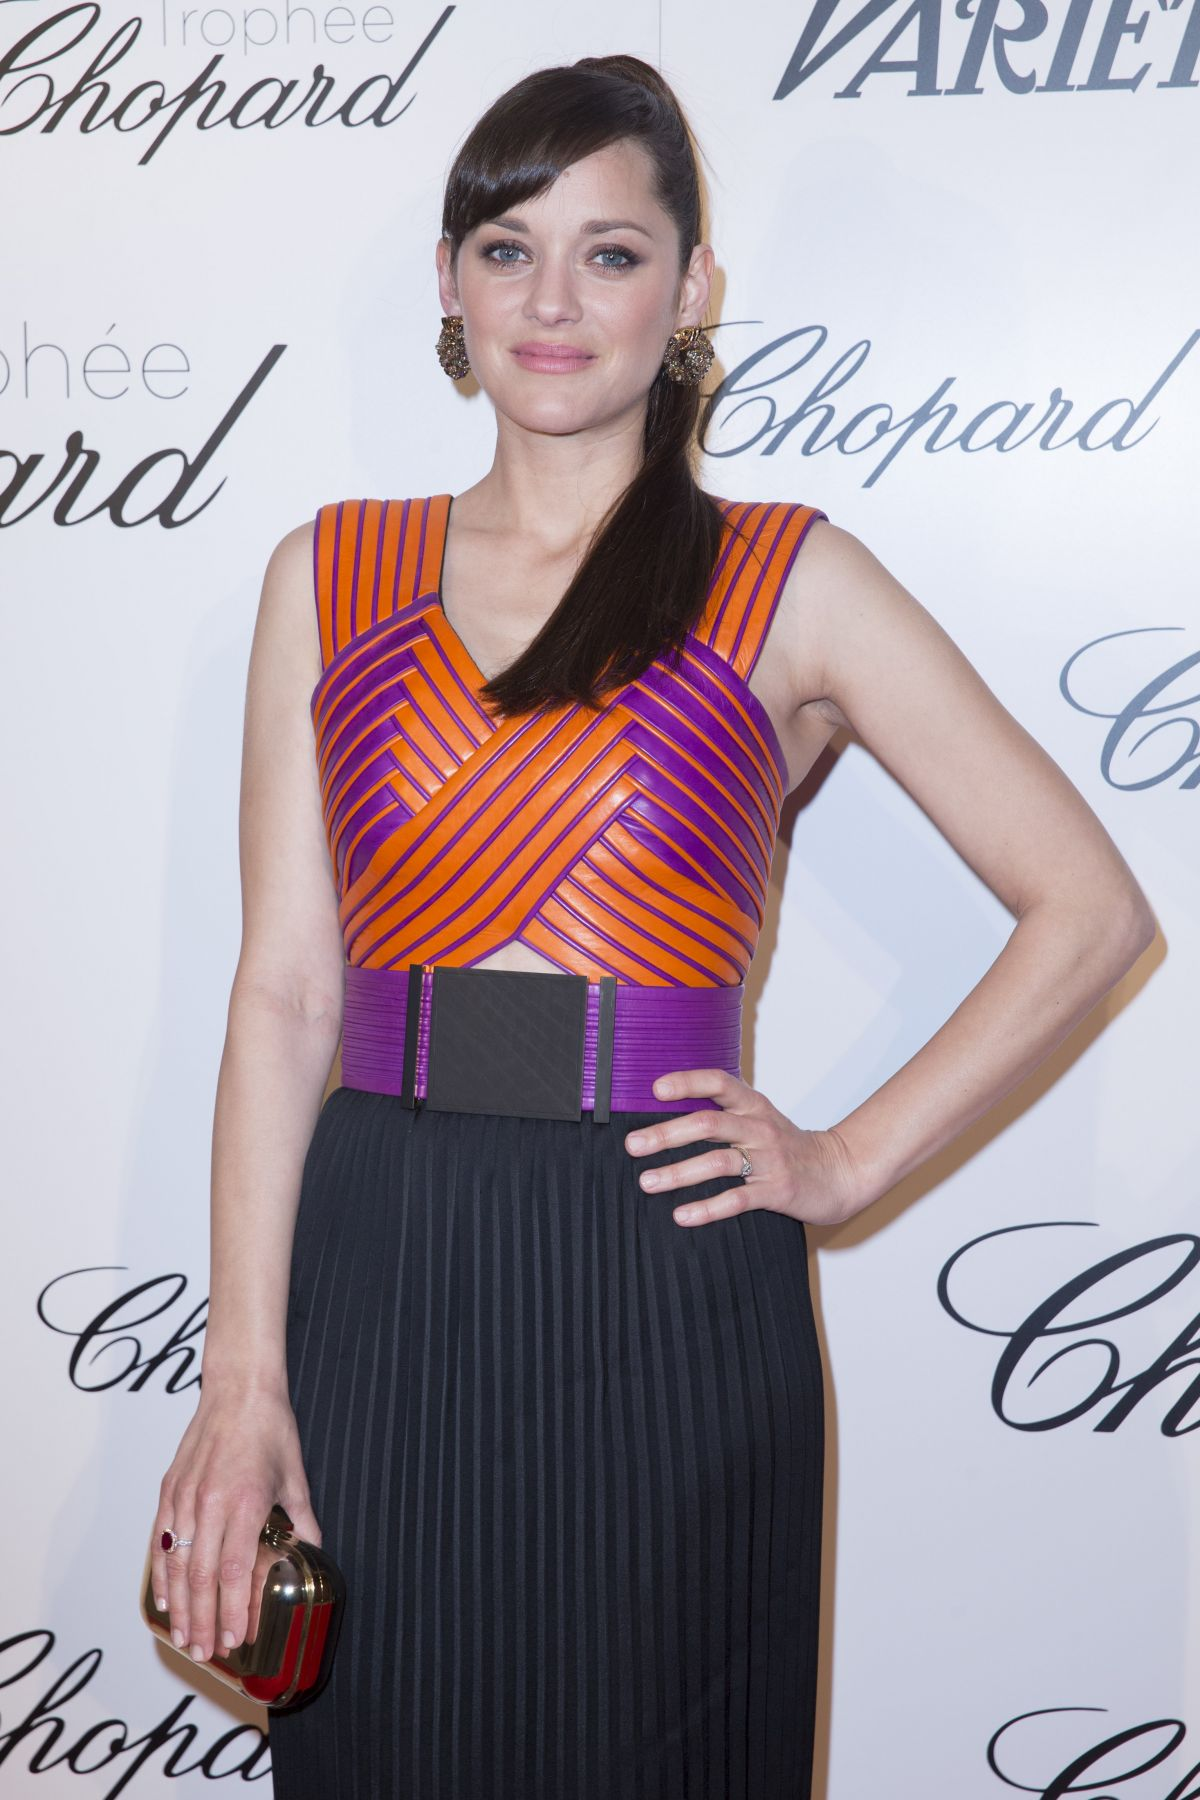 MARION COTILLARD at Chopard Trophy Party in Cannes